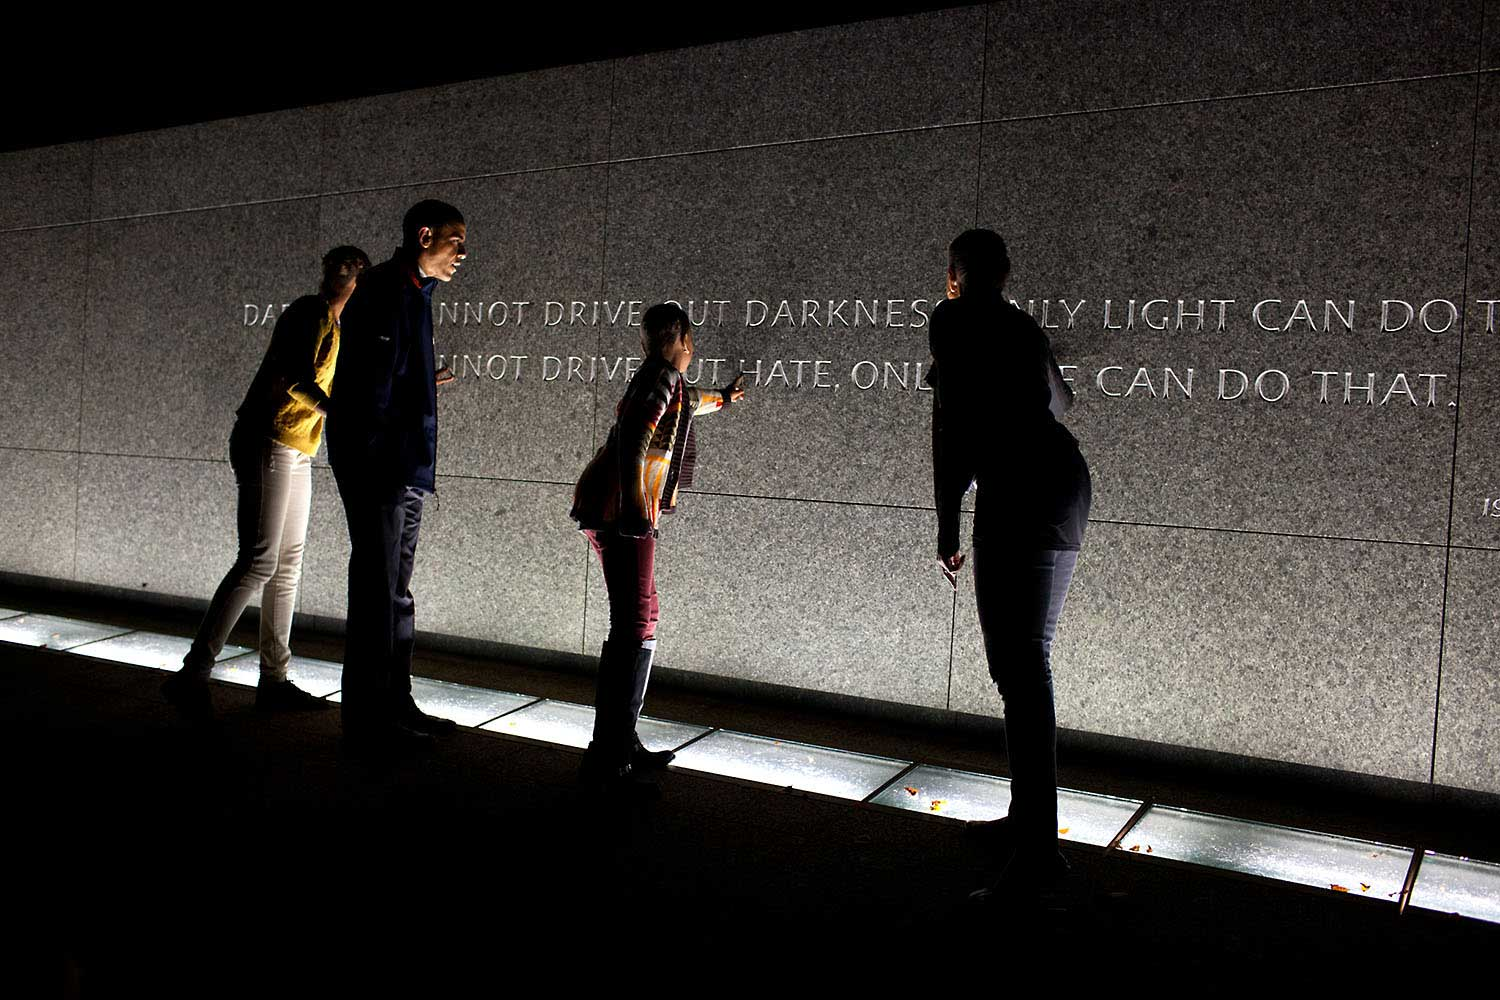 The Obama family make an unannounced visit to tour the Martin Luther King, Jr. National Memorial in Washington, D.C., Oct. 14, 2011, the night before the President made remarks at the official dedication of the memorial.